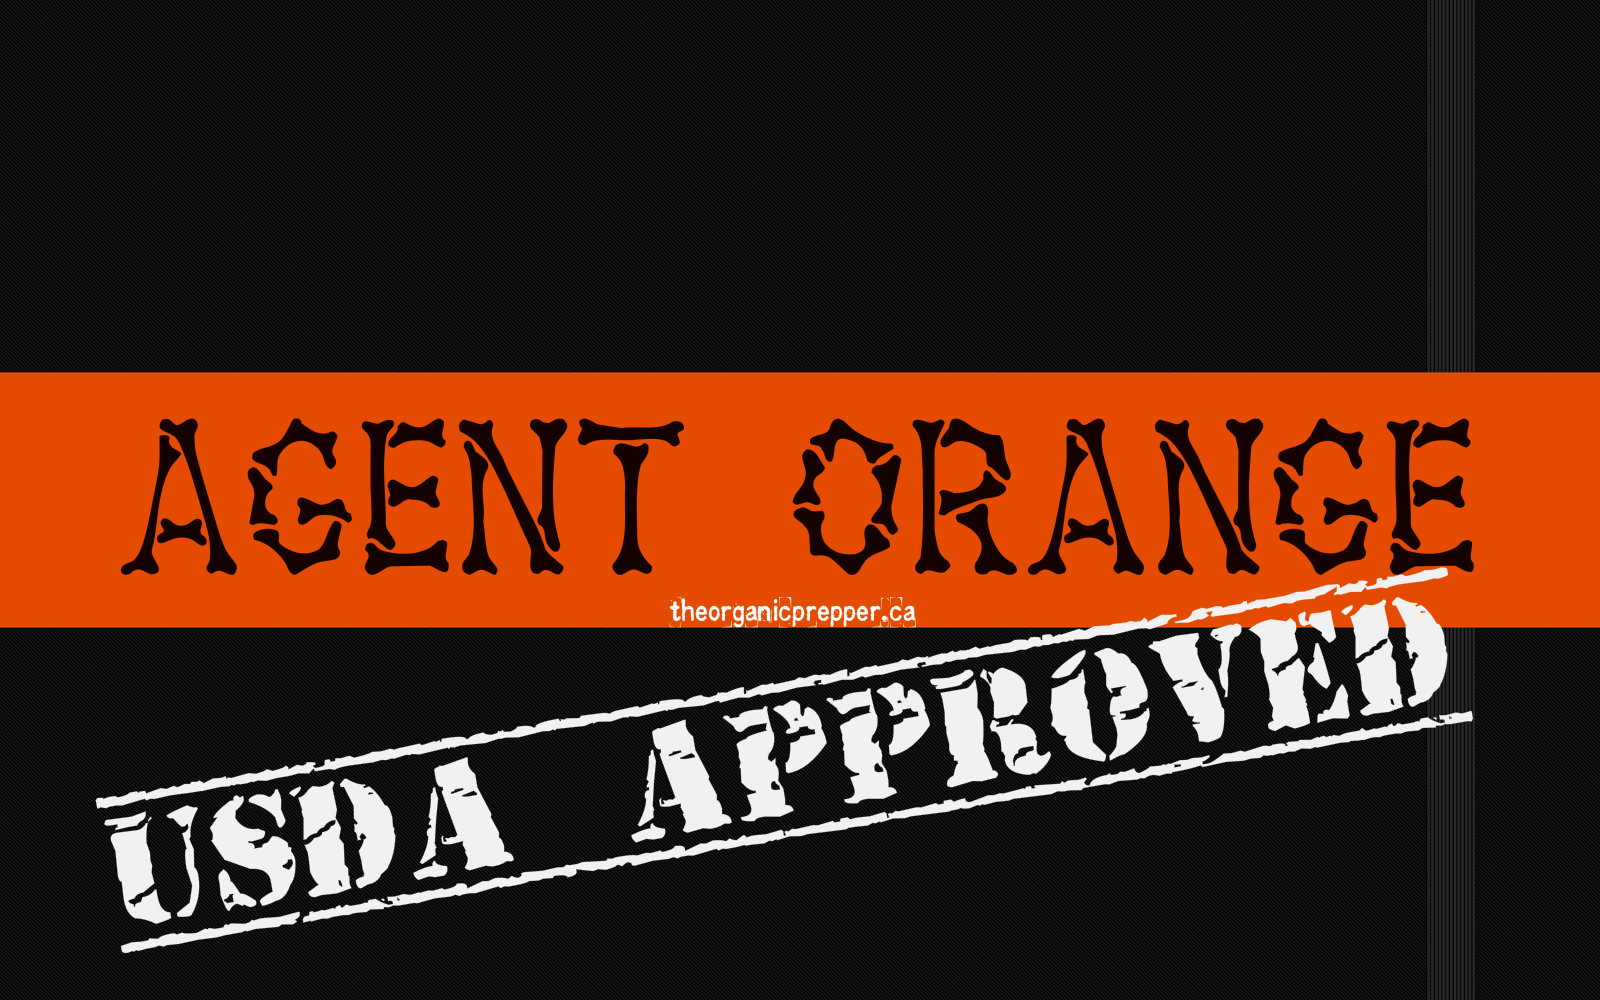 USDA approved agent orange